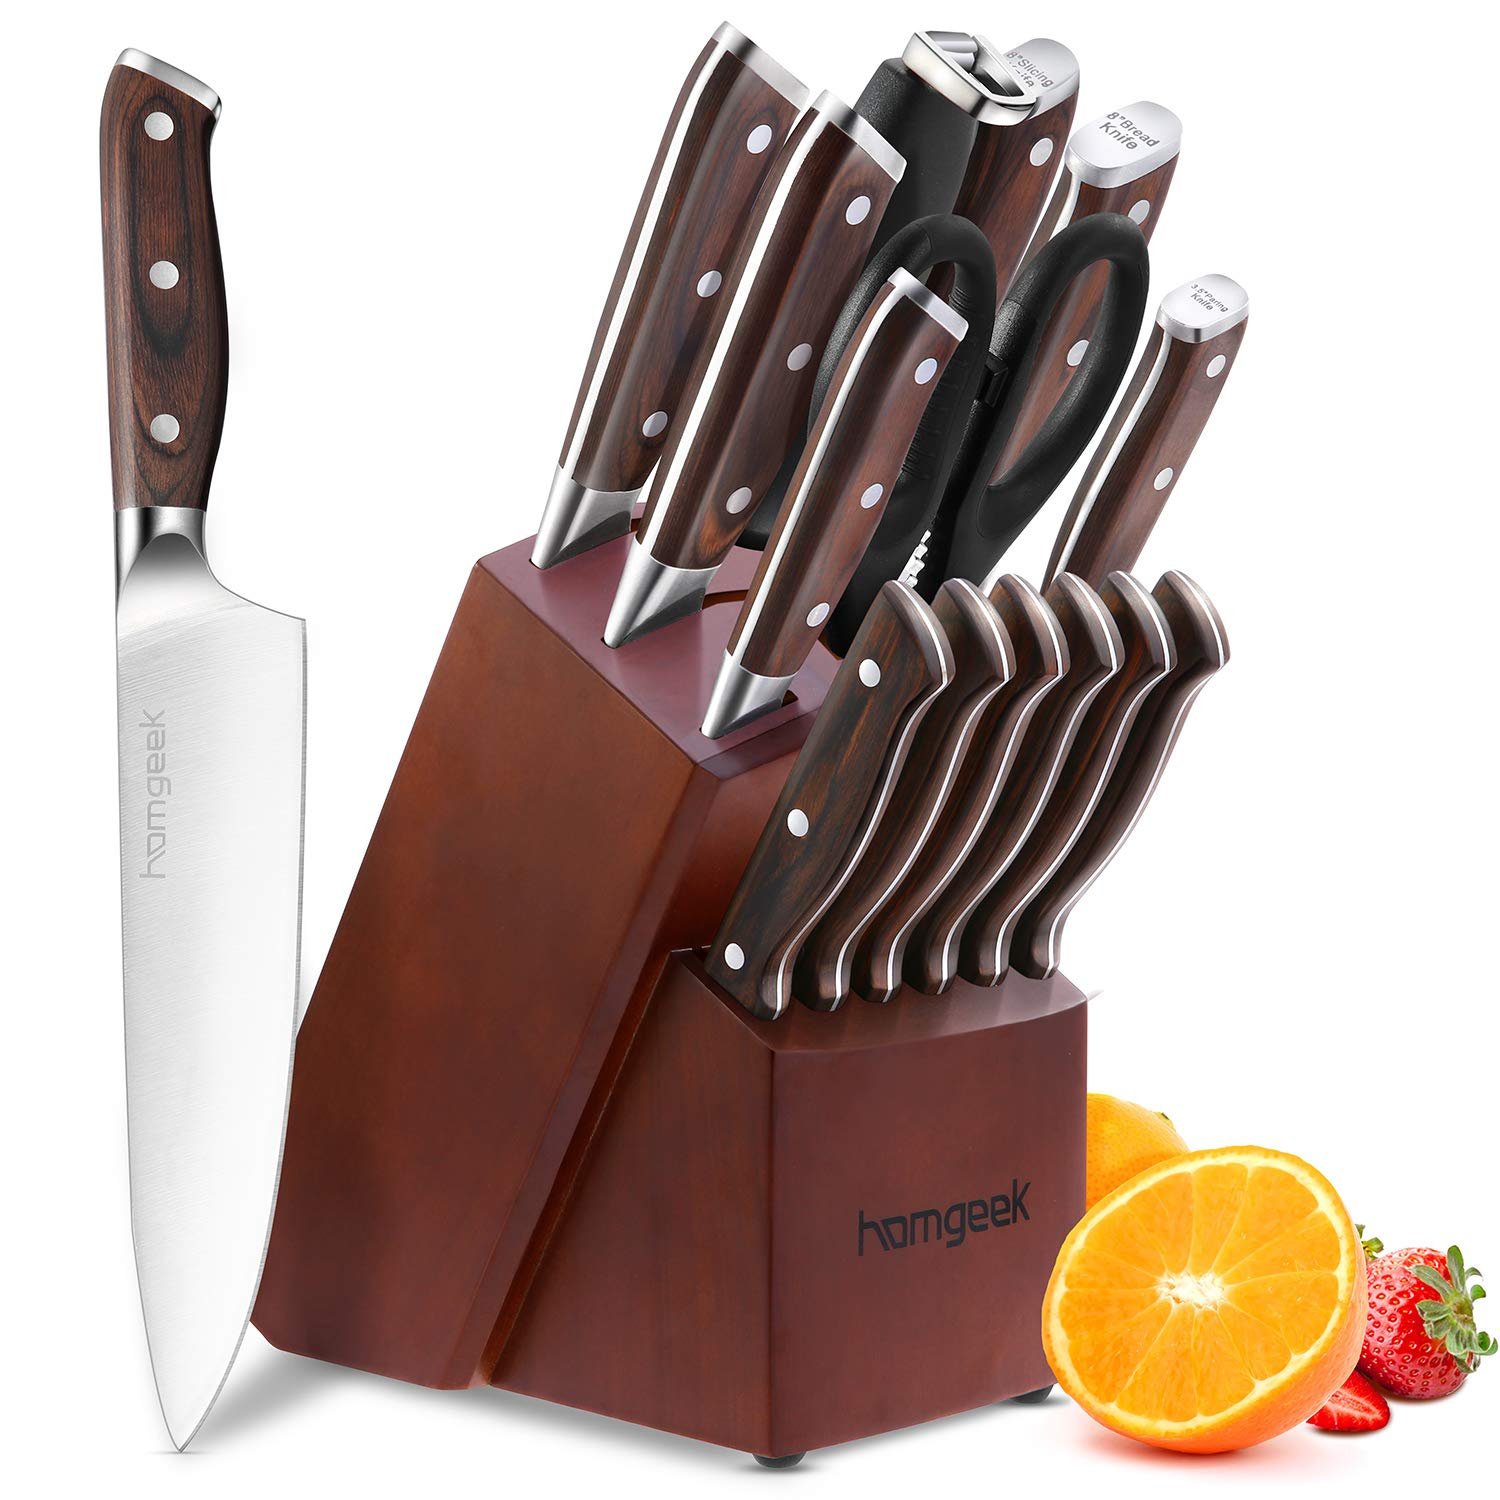 Chef Knife Set,15 Piece Knife set With Wooden Block,Wood Handle and German 1.4116 Stainless Steel,Full-Tang